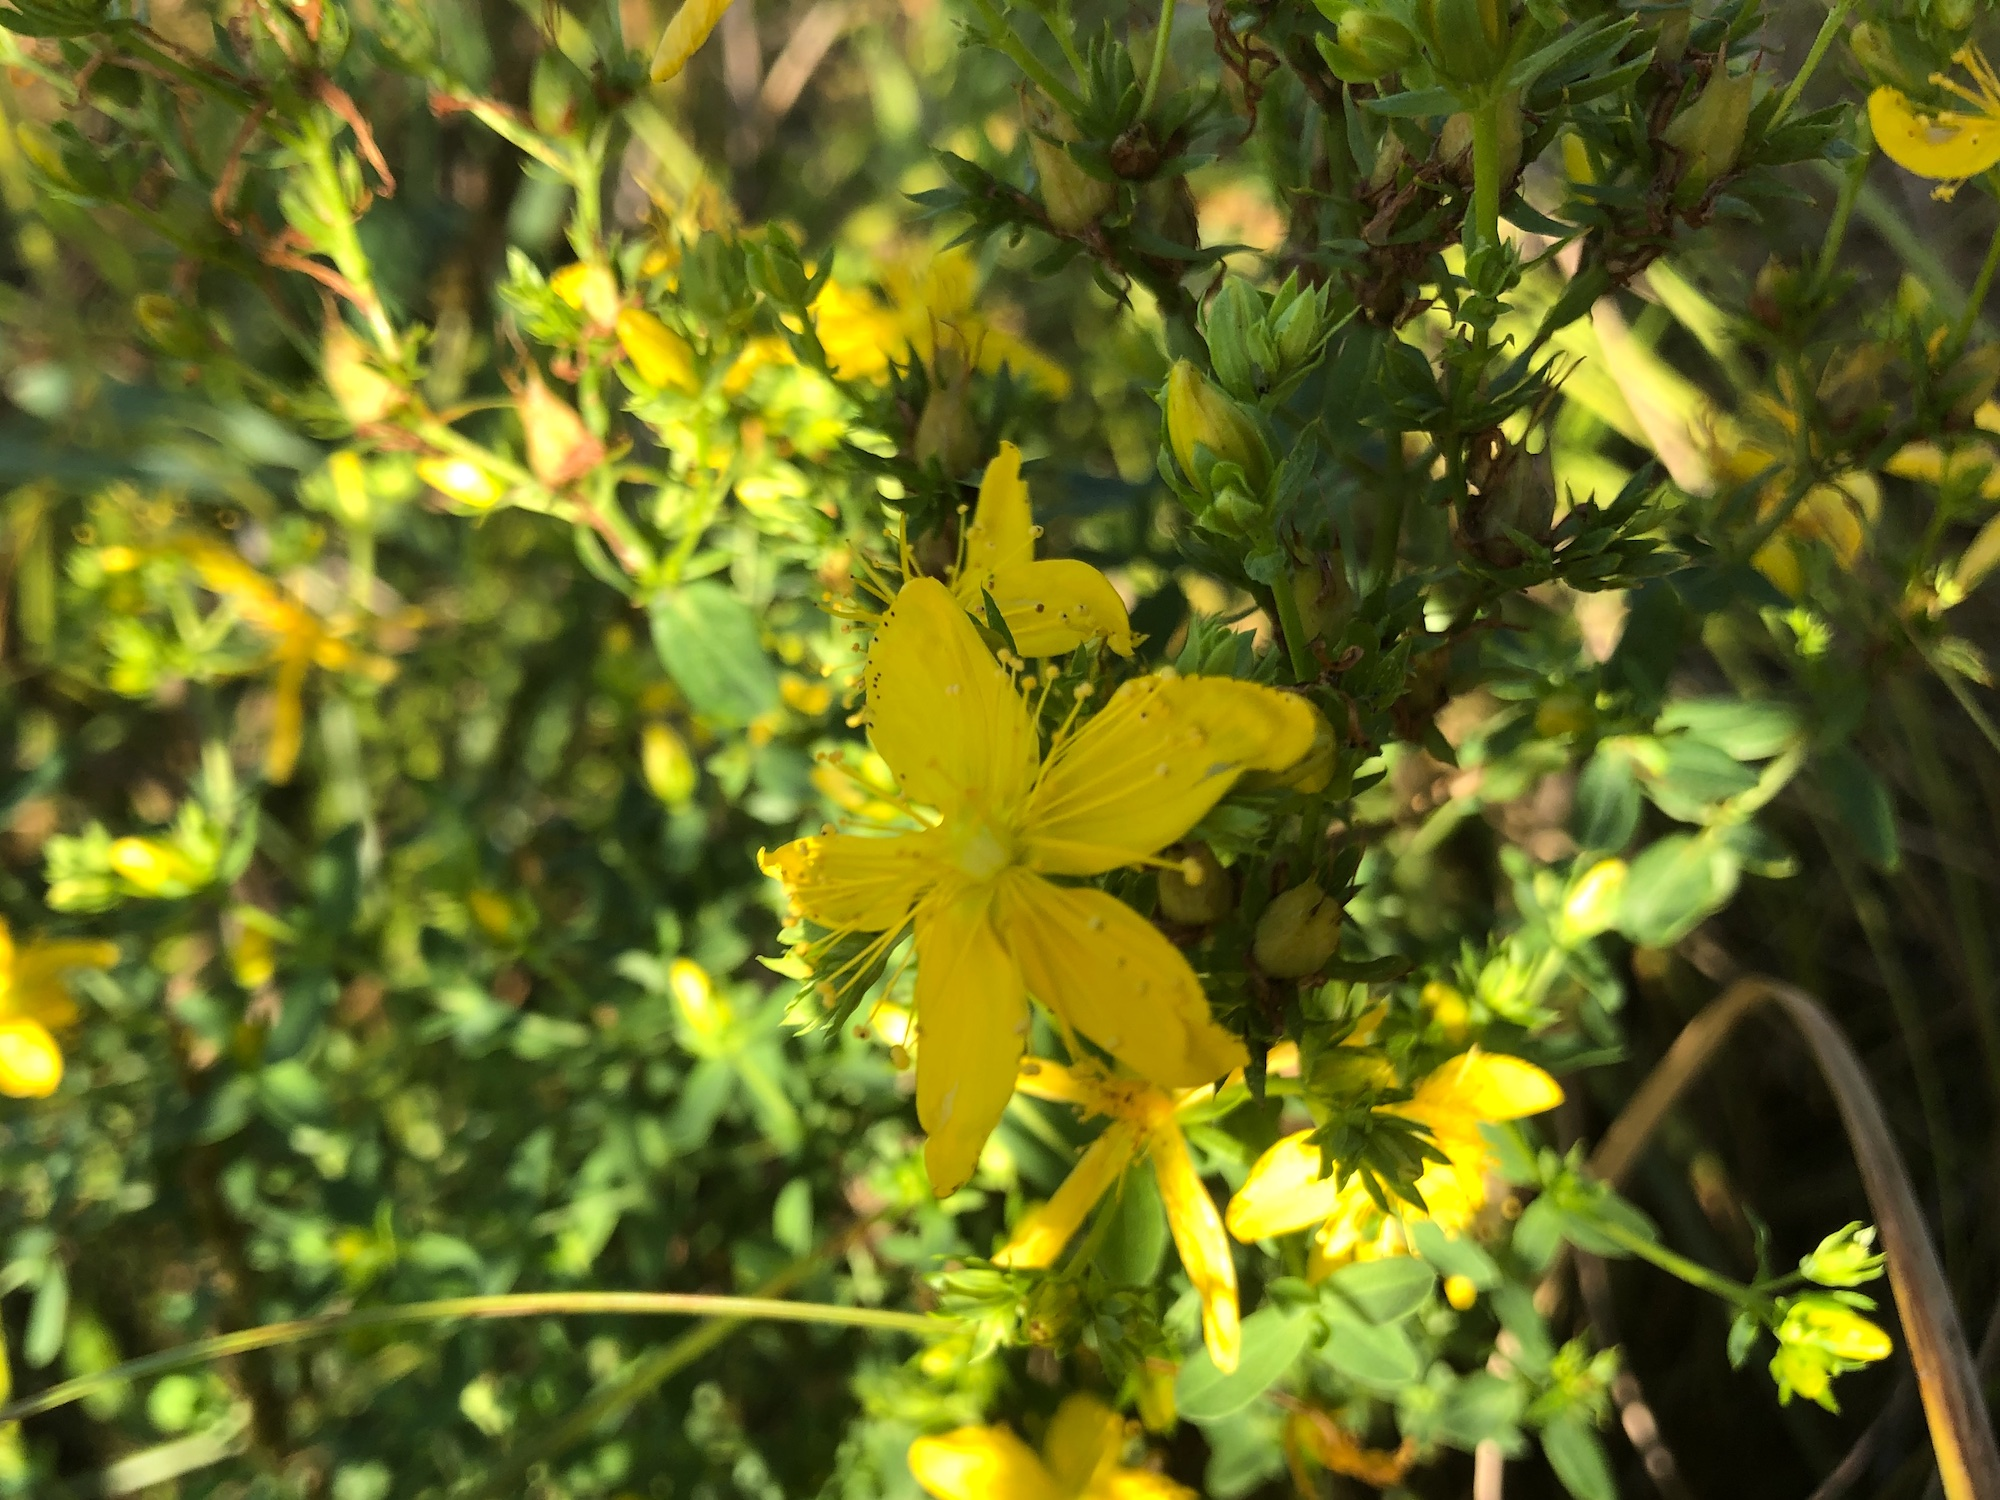 t. John's Wort on bank of Lake Wingra in Wingra Park on July 30, 2019.